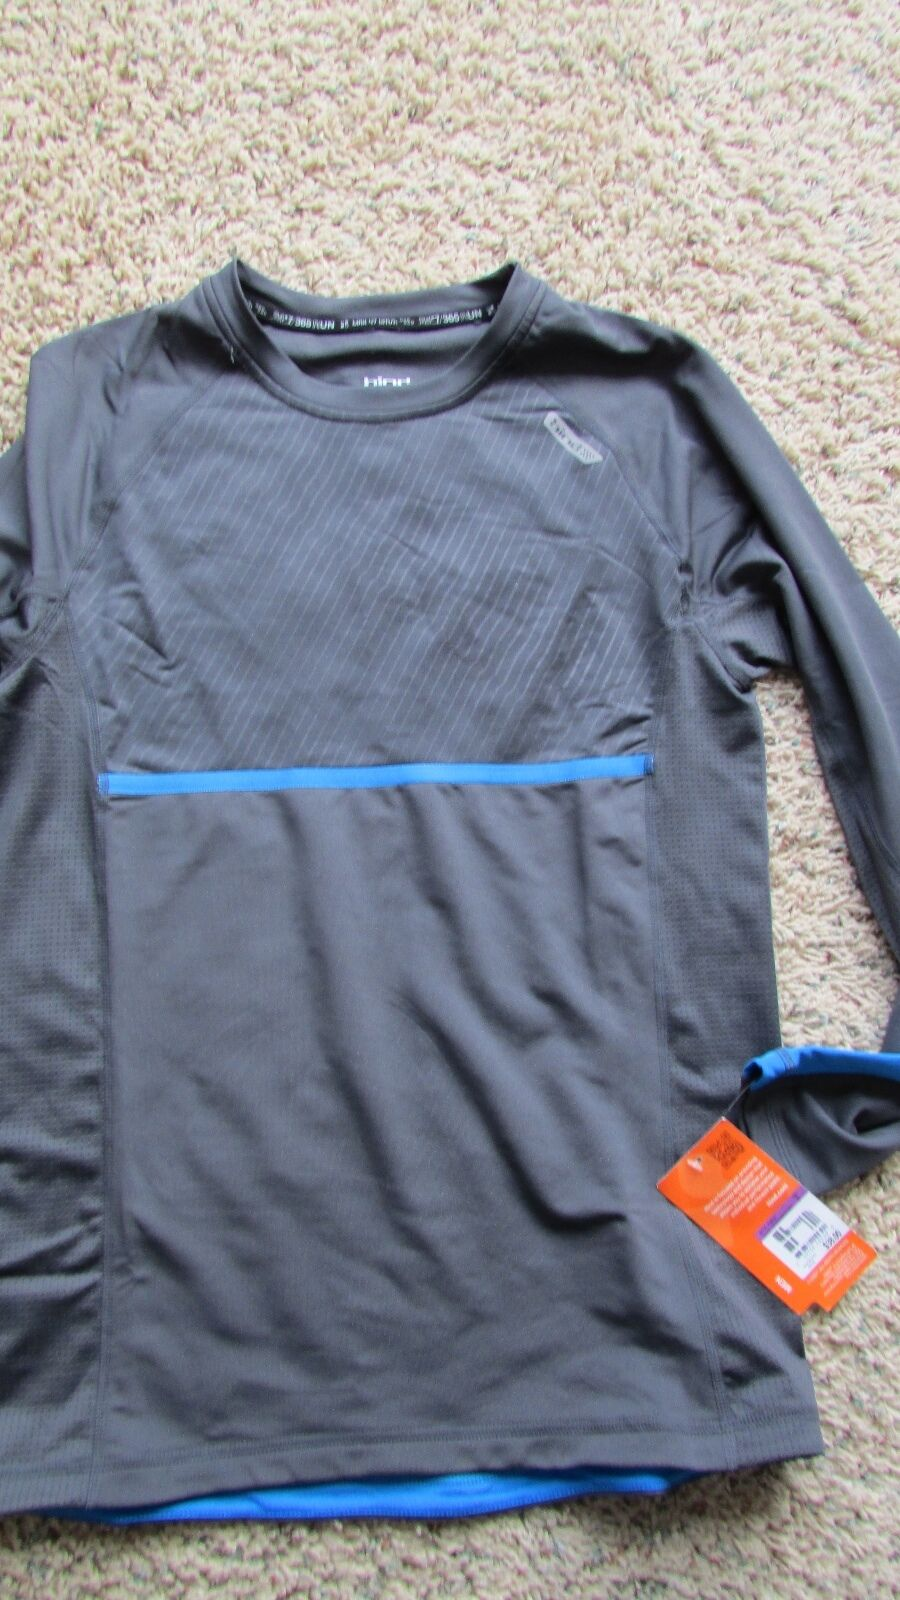 NEW HIND LONG SLEEVED RUNNING CYCLING JERSEY MENS S REFLECTIVE FREE SHIP